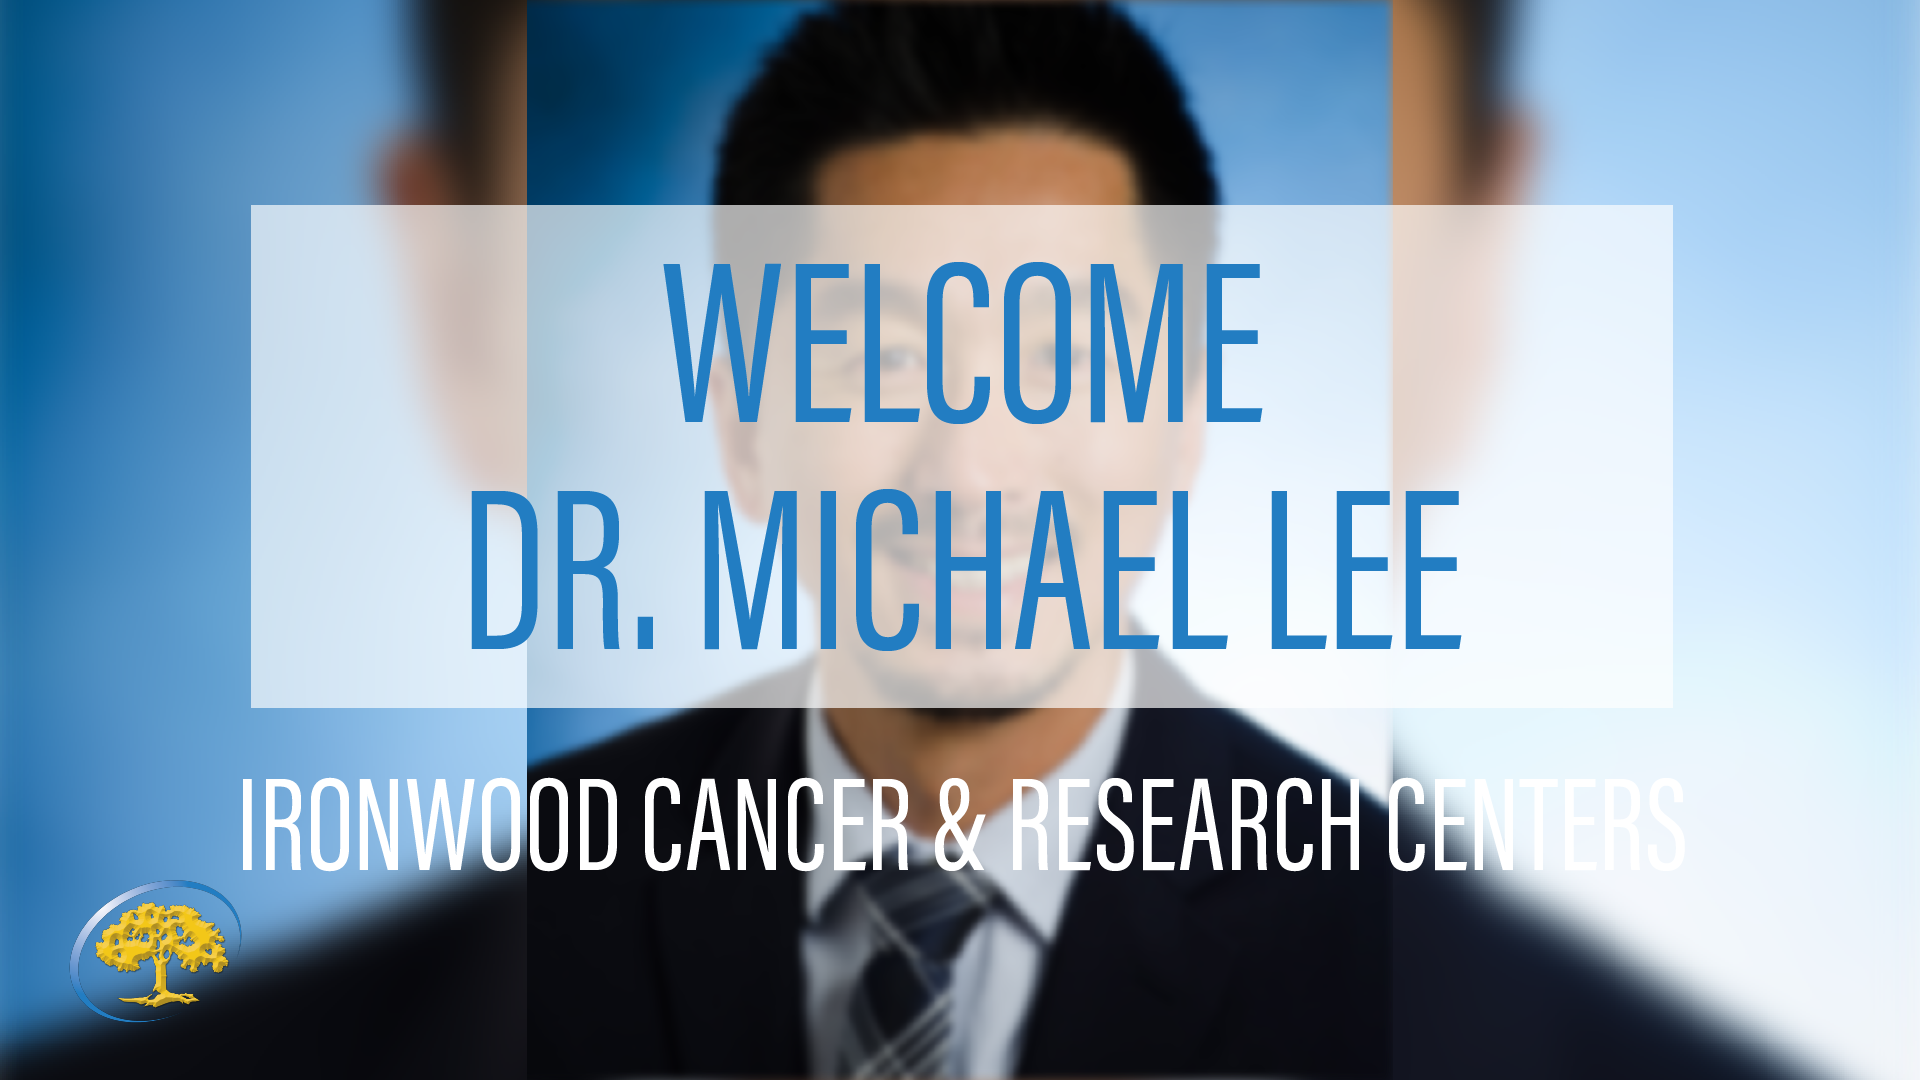 Dr. Michael Lee Joins Ironwood Cancer & Research Centers